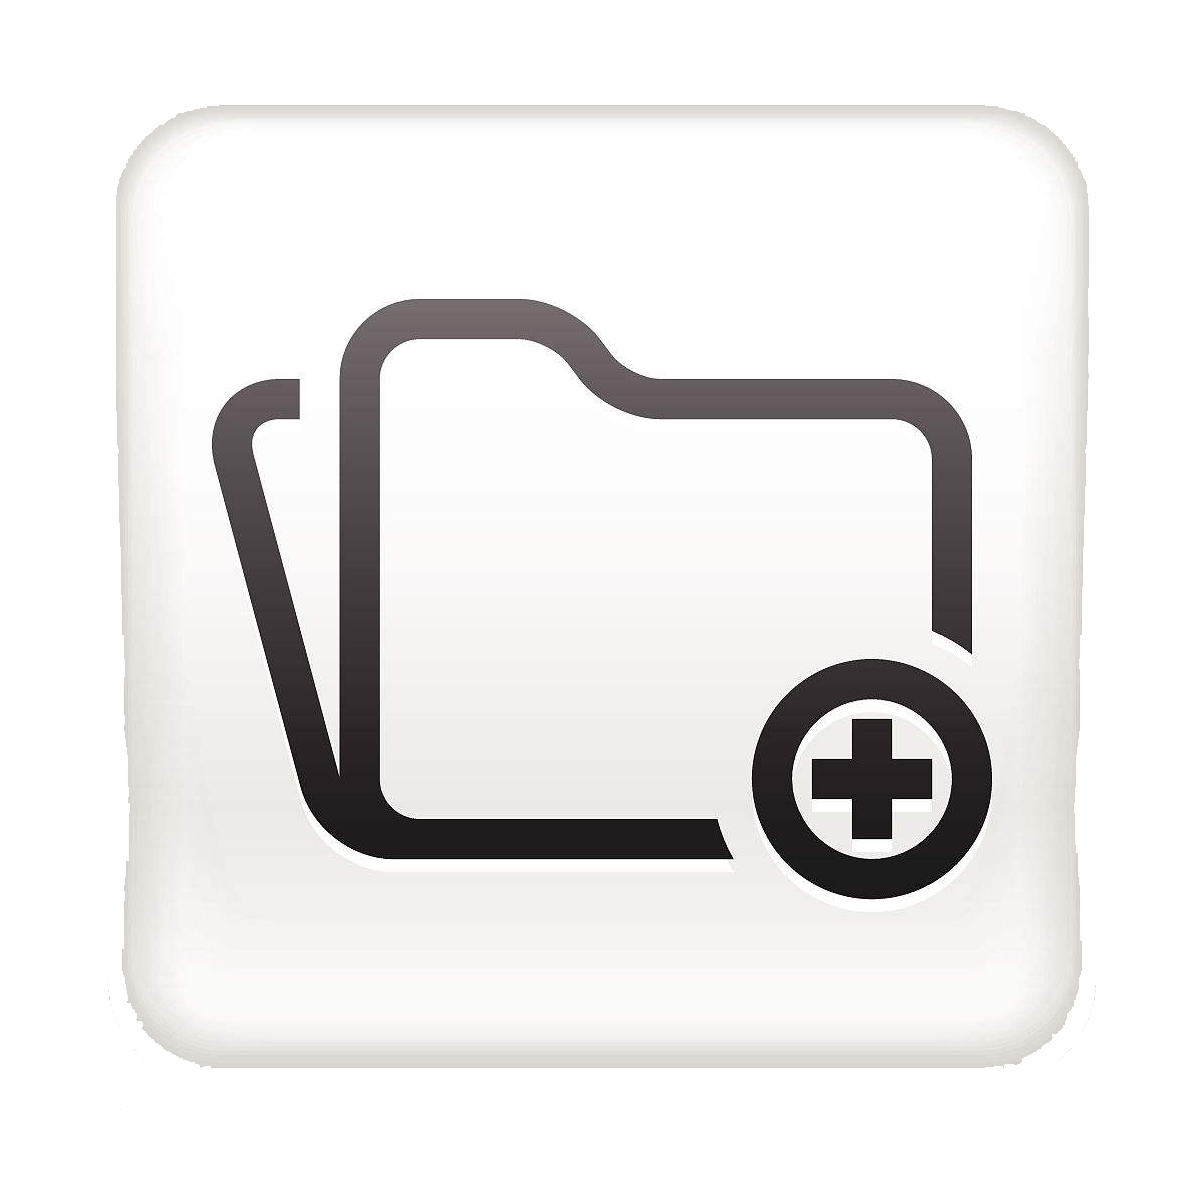 Tech buttons png. Button download icon white